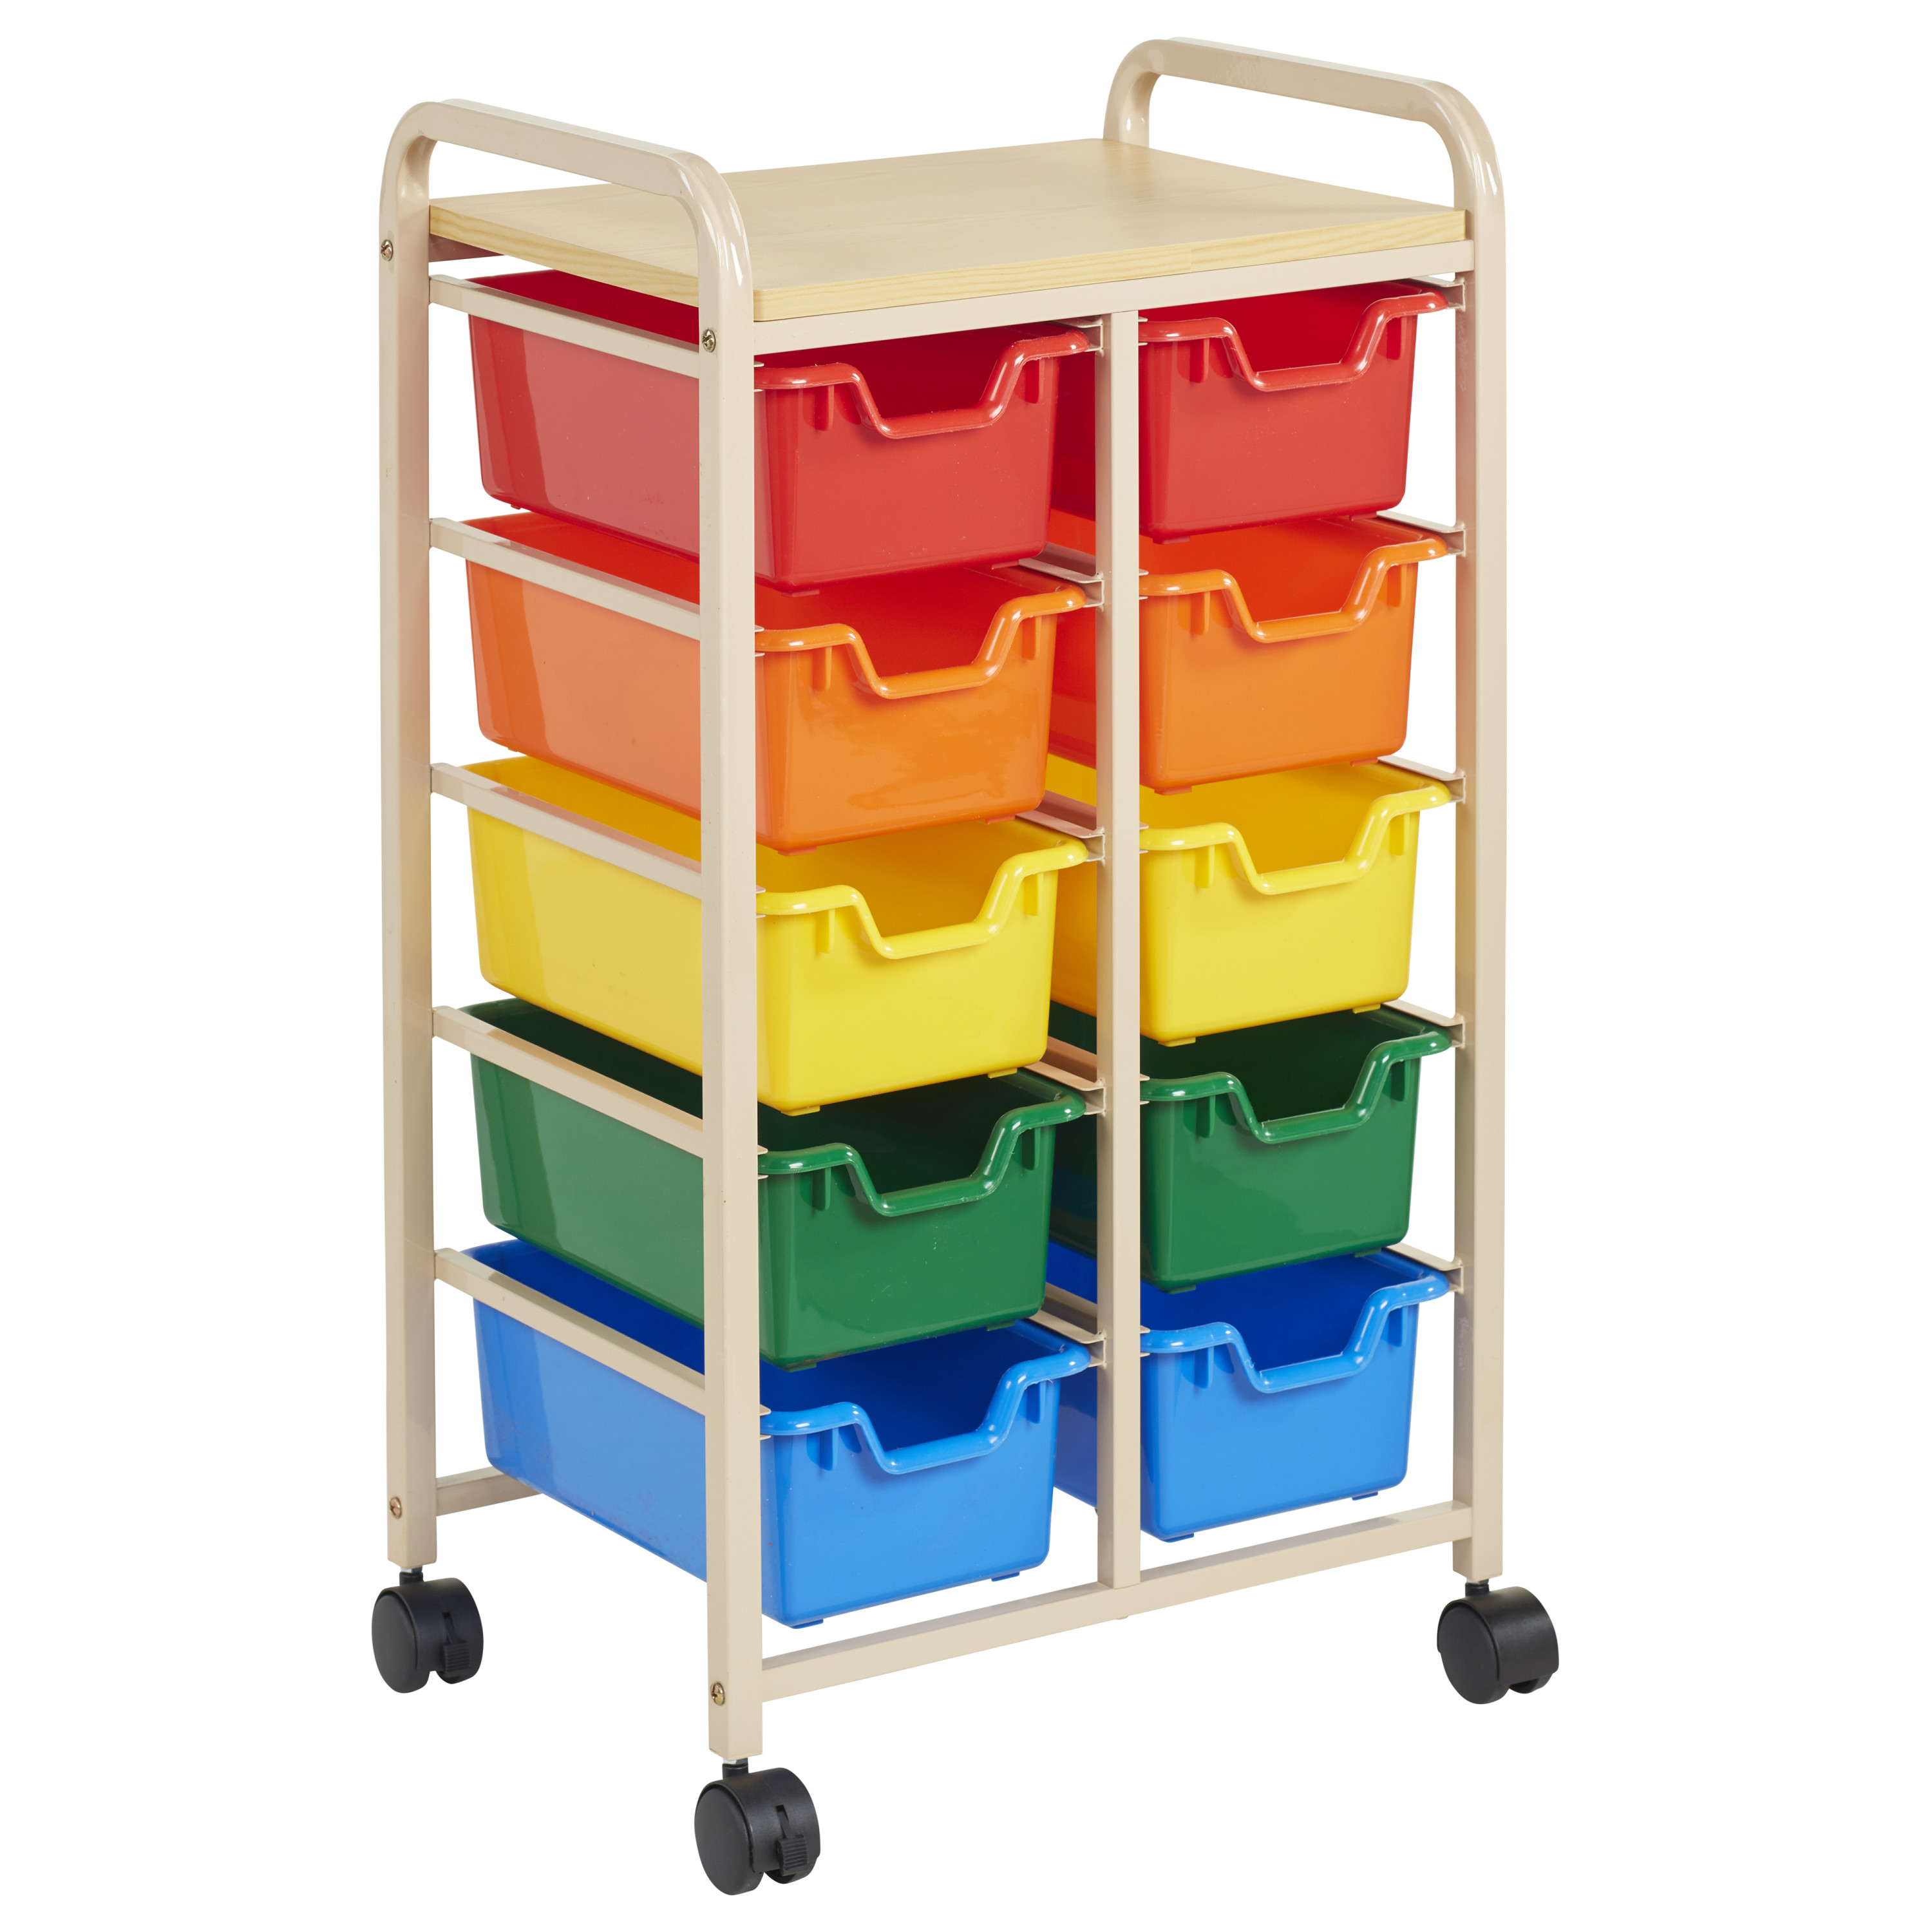 10-Bin Mobile Organizer Sand - Assorted Bins